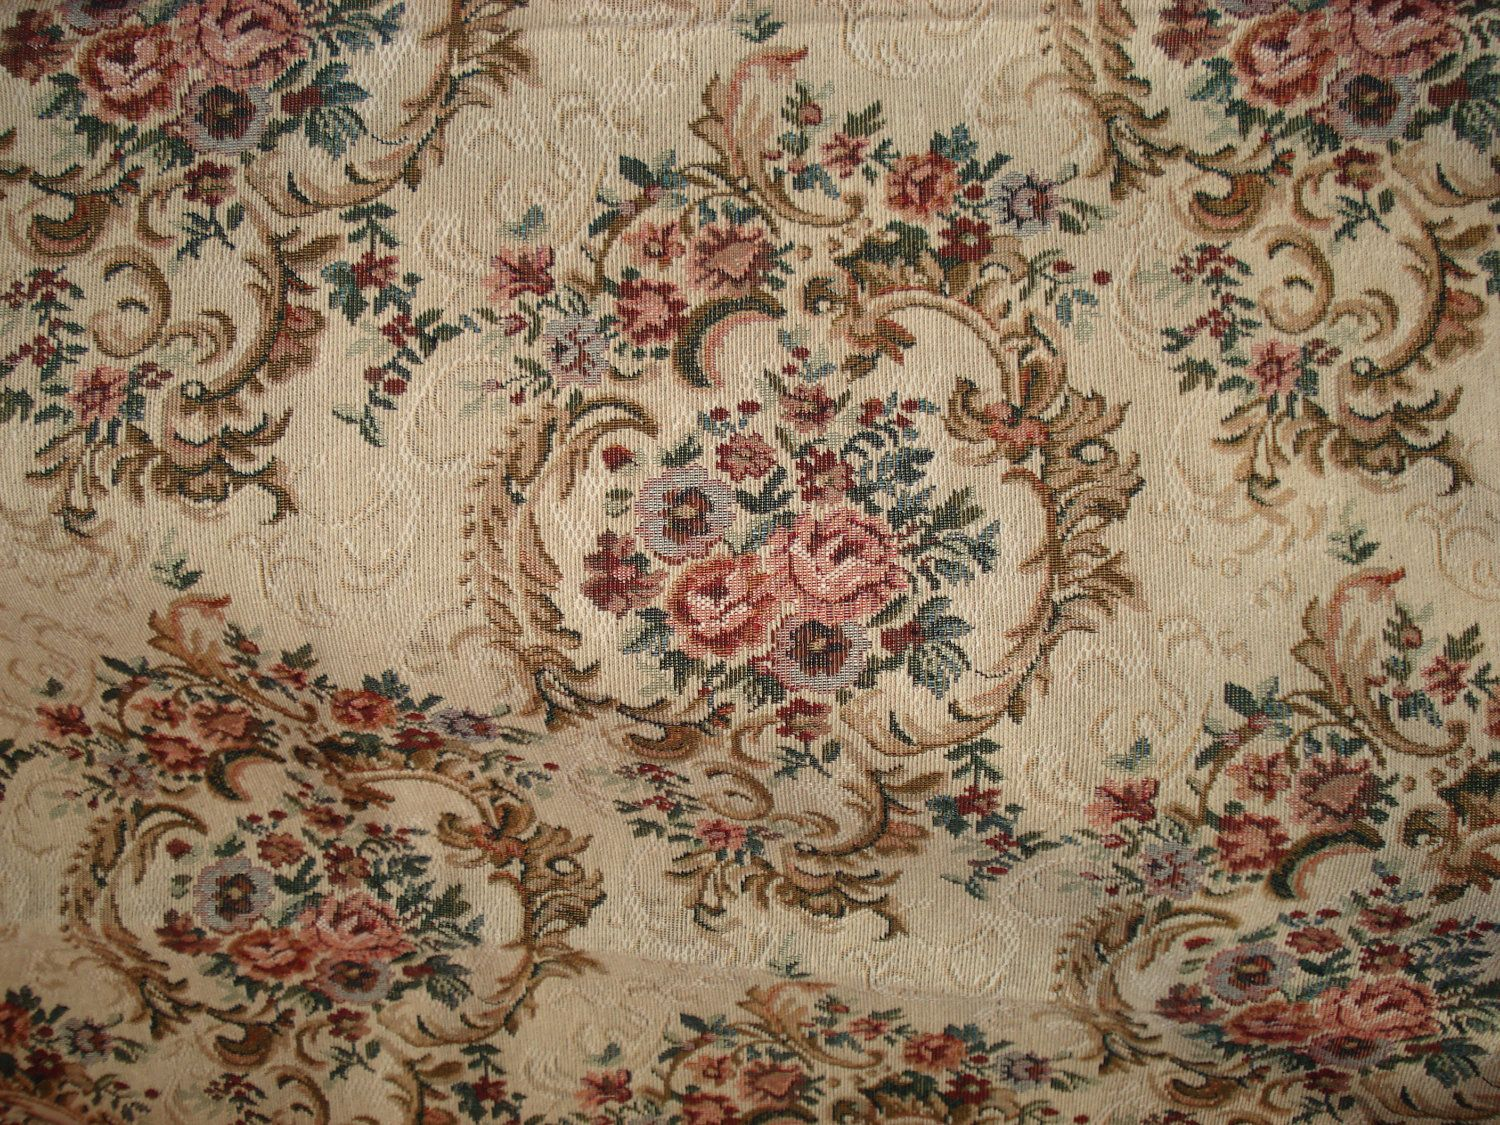 Vintage Beige And Floral Pattern Tapestry Fabric 2 Piece